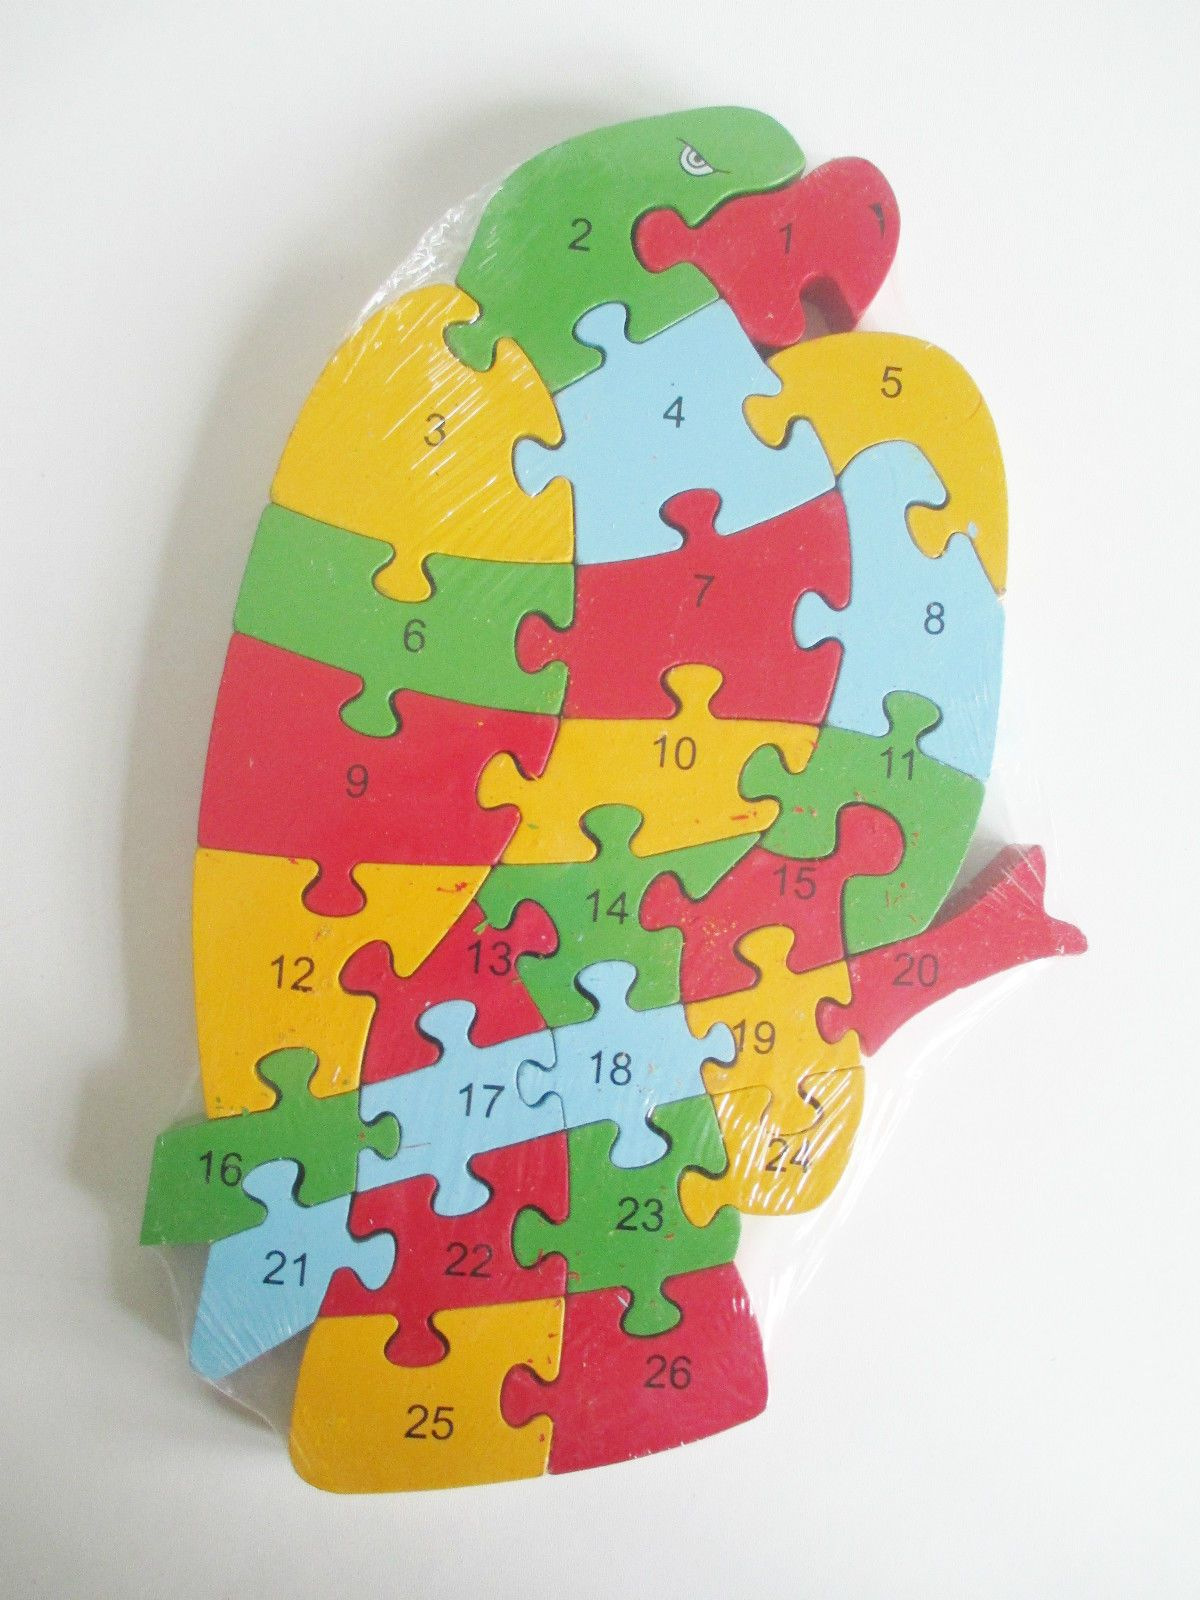 Educational Numbers Jigsawpuzzle Letters Wooden With And colorfull SUzMVp